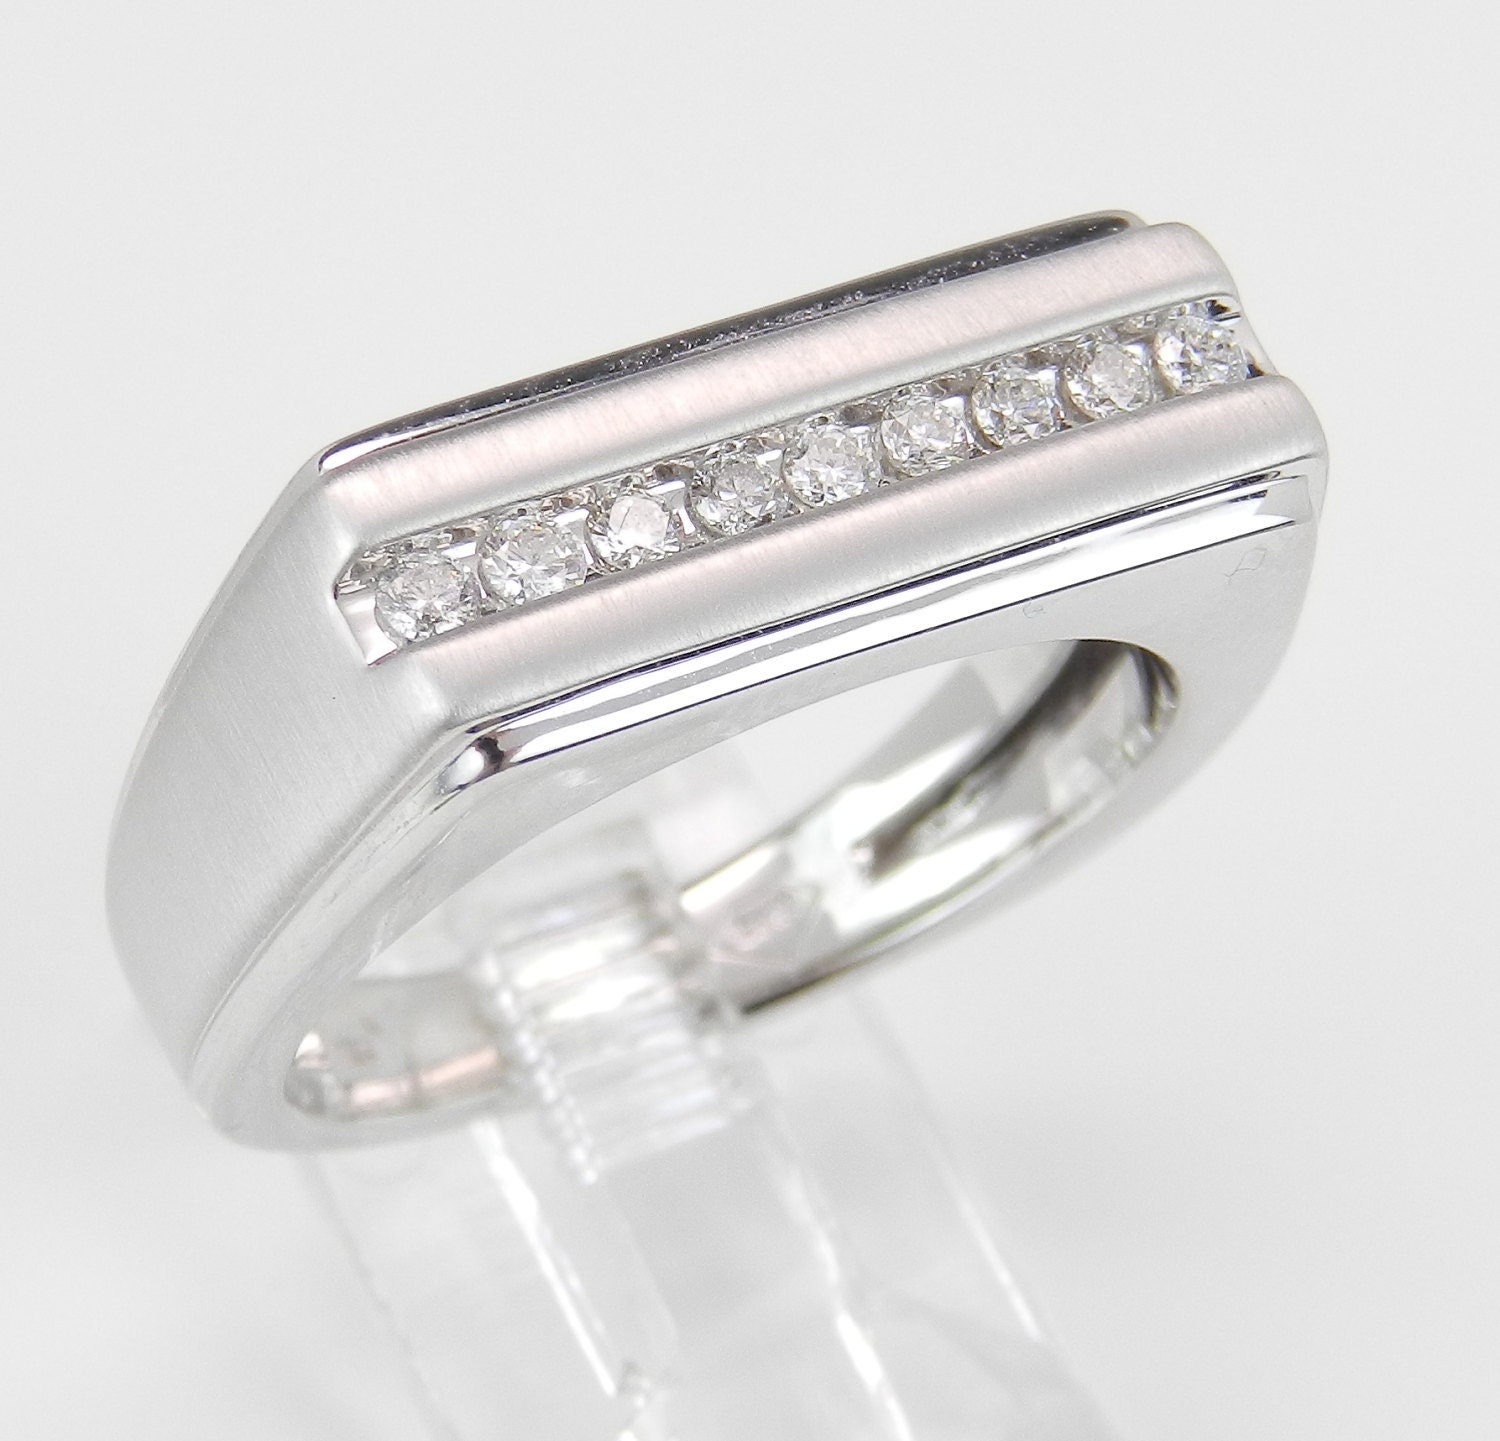 kaplan cut wedding band products diamonds bad lazare platinum arnell lk judith bands diamond kaklan full jewelers